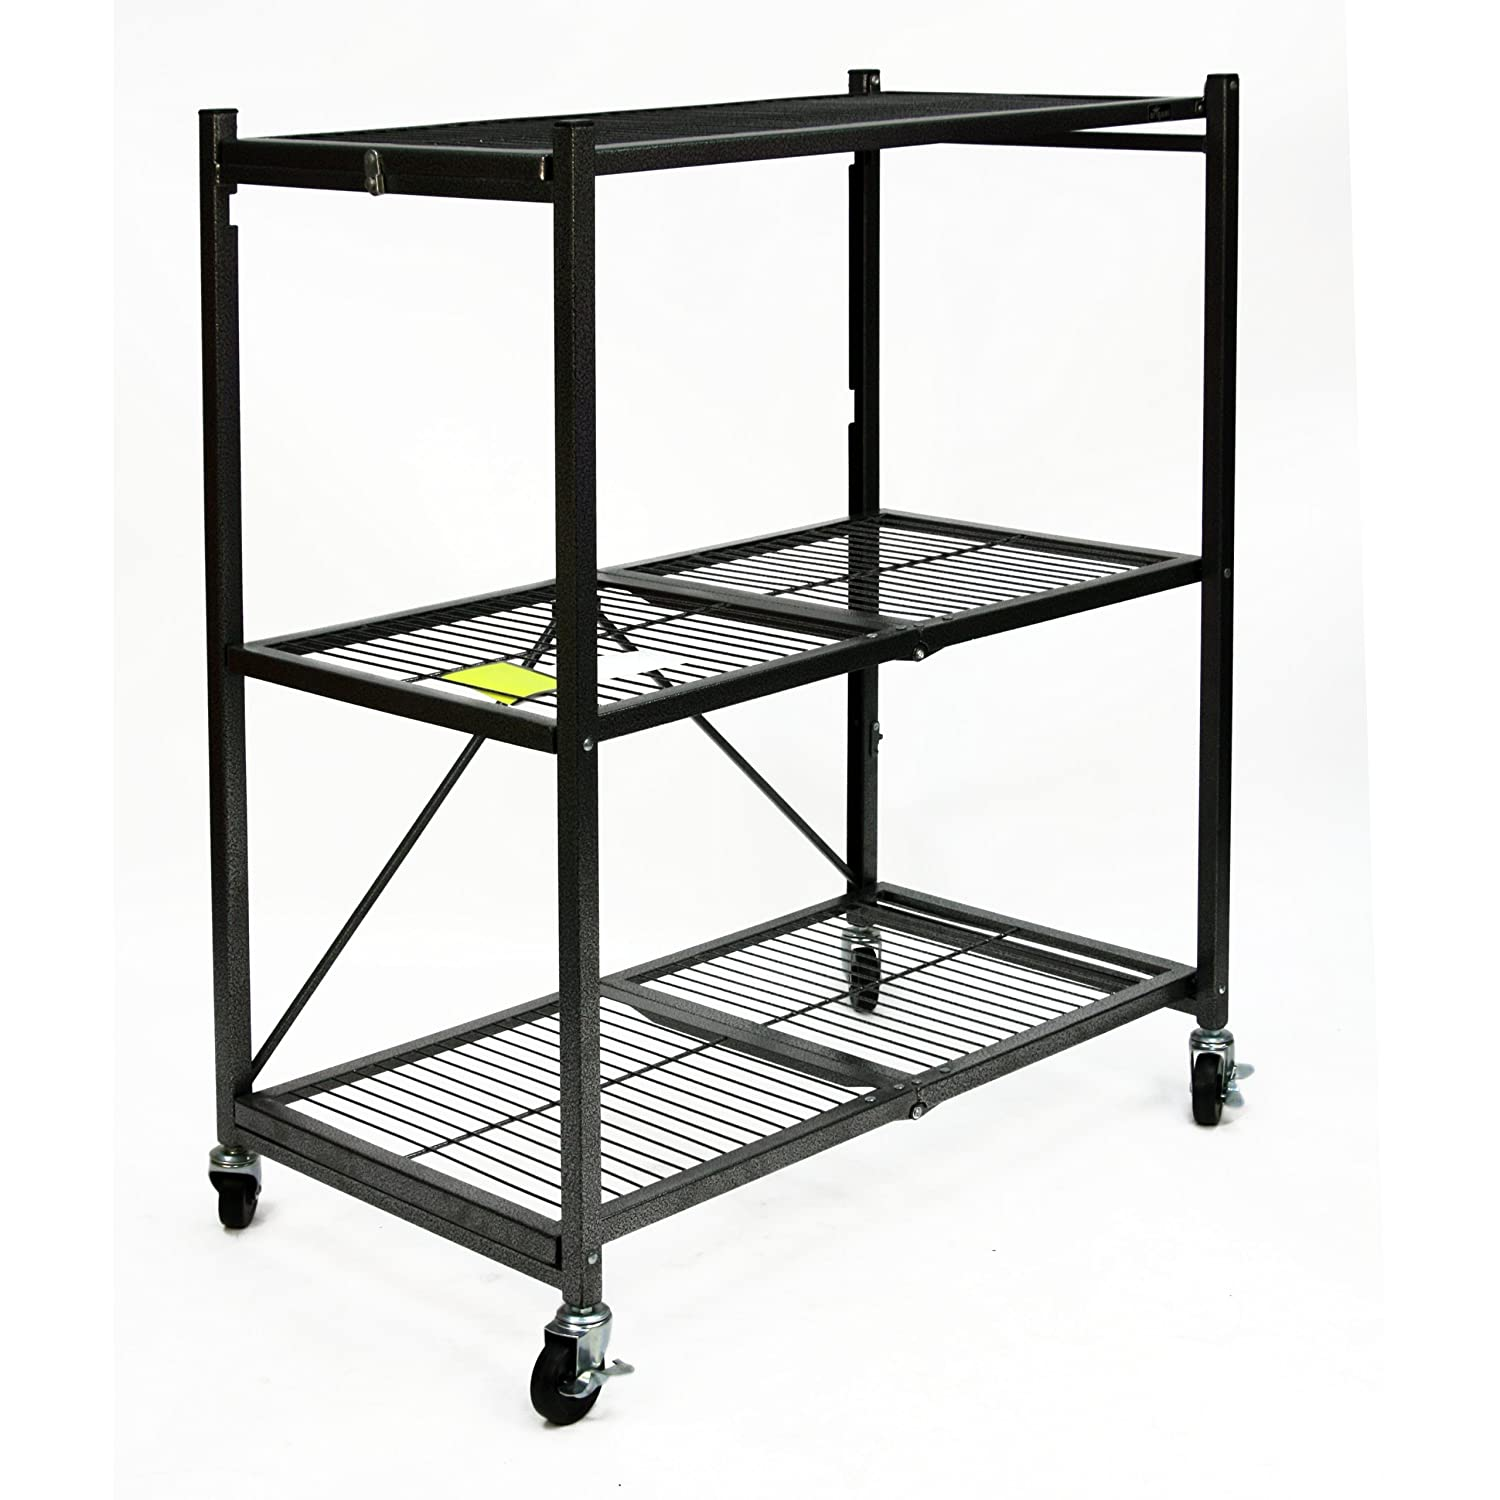 shelves part heavy duty of amazon com for hwheel improvement origami inch wheels black set rack shelf home dp